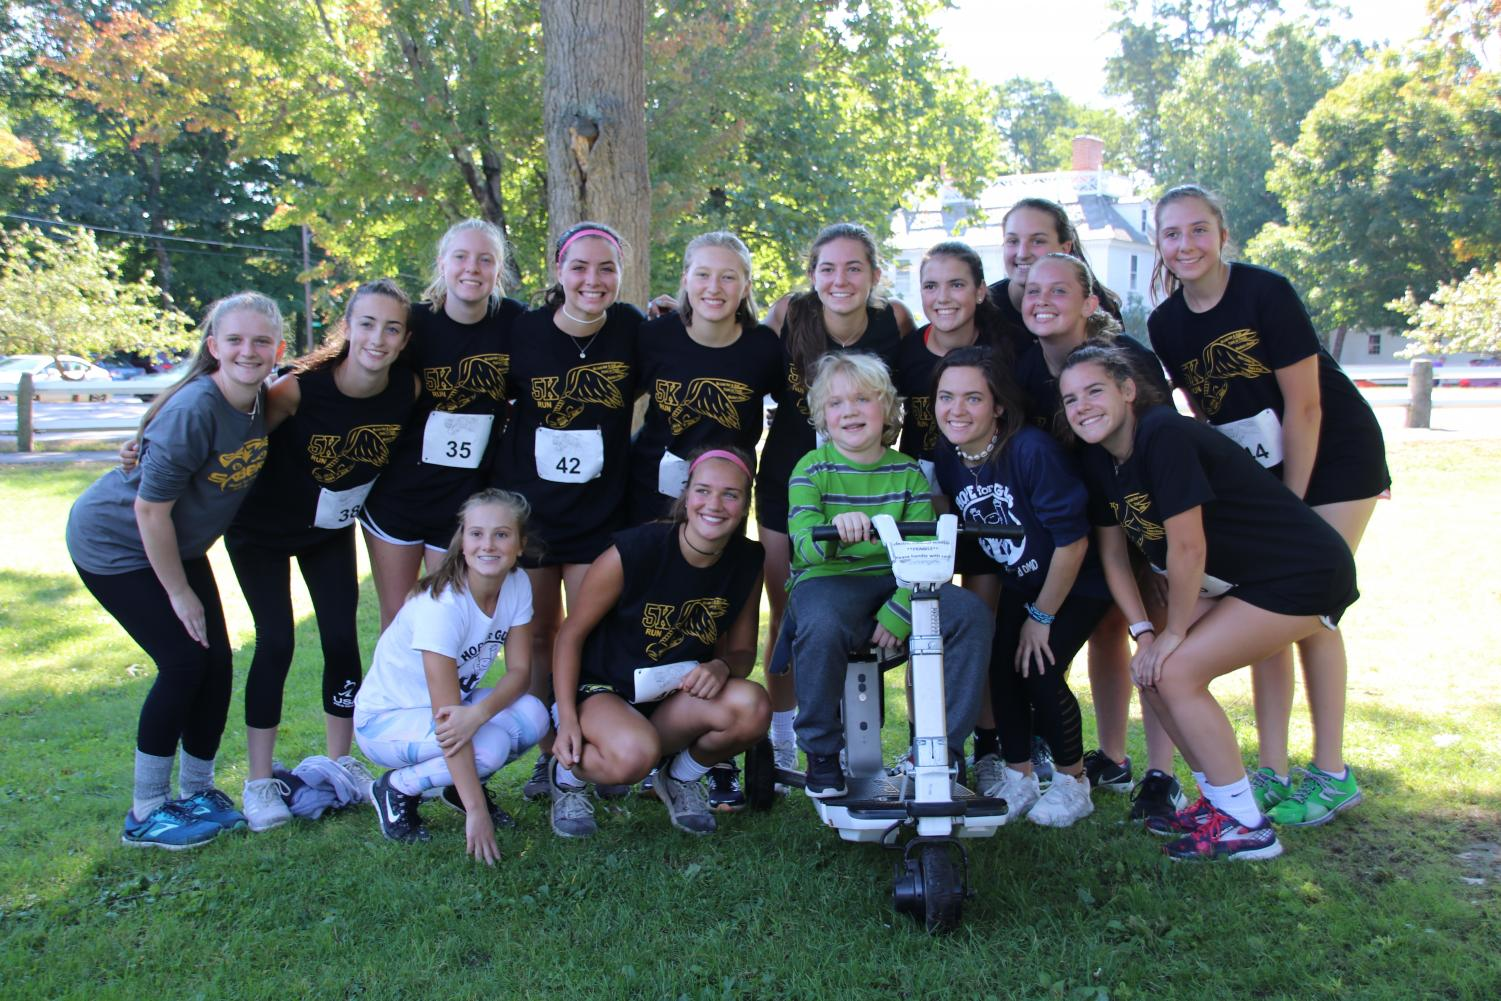 The Souhegan High School field hockey team participated in this year's 5K run.